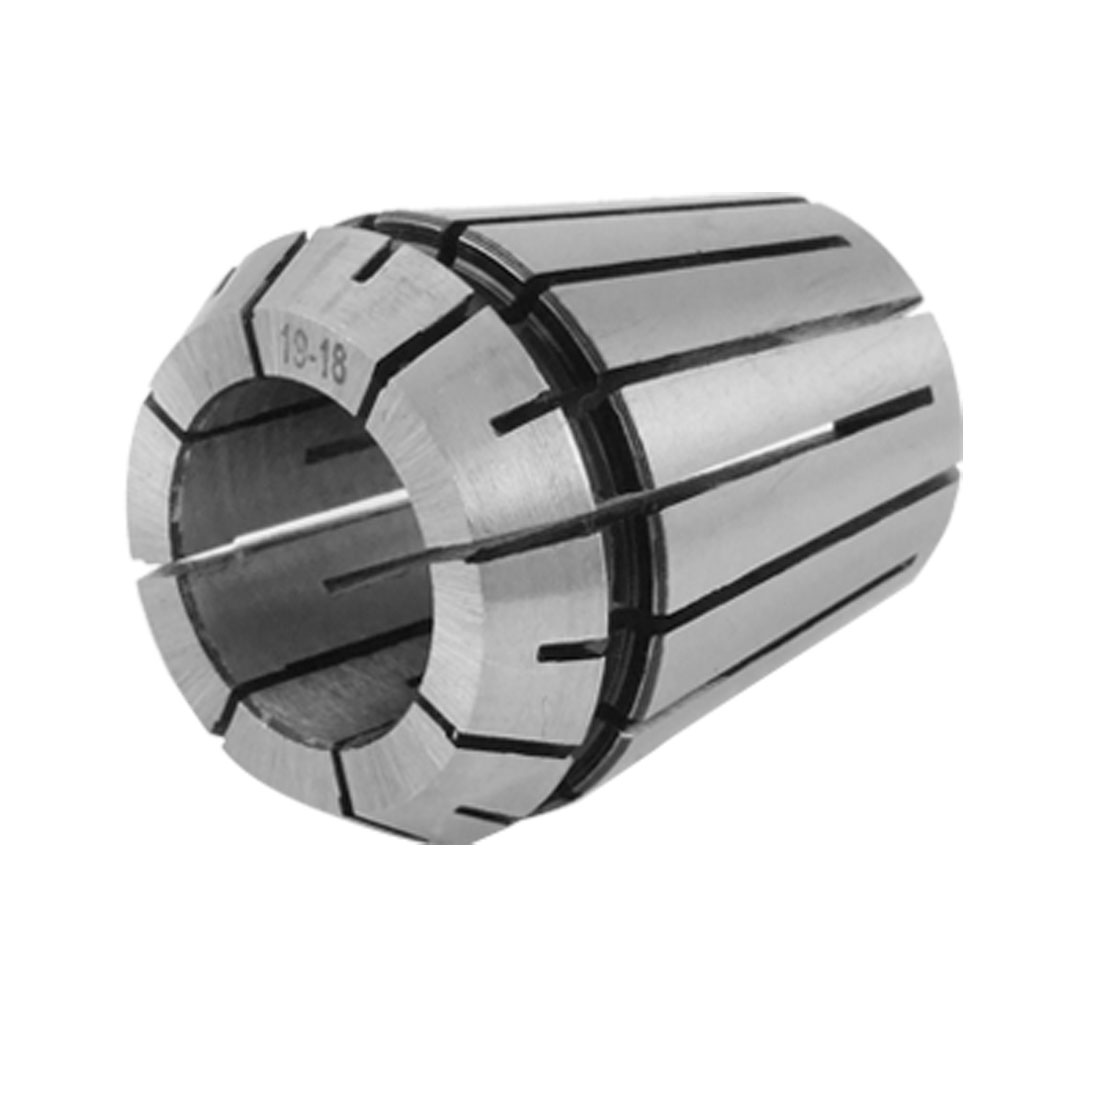 Clamping Range 19mm-18mm Stainless Steel Spring Collet